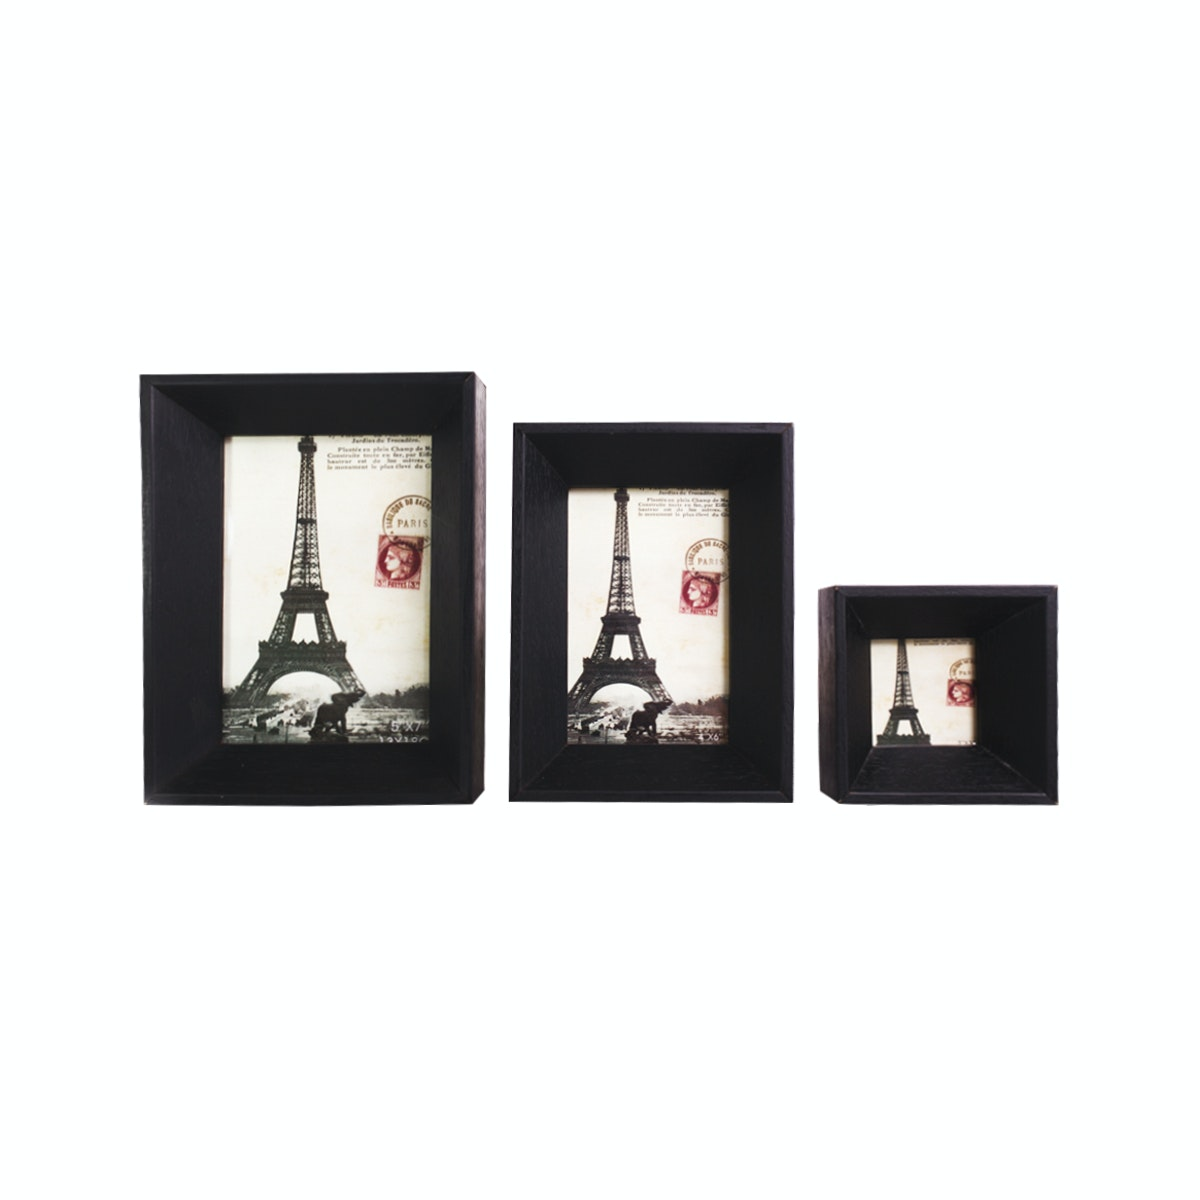 Raphael Living Frame A 1 set 3 pcs